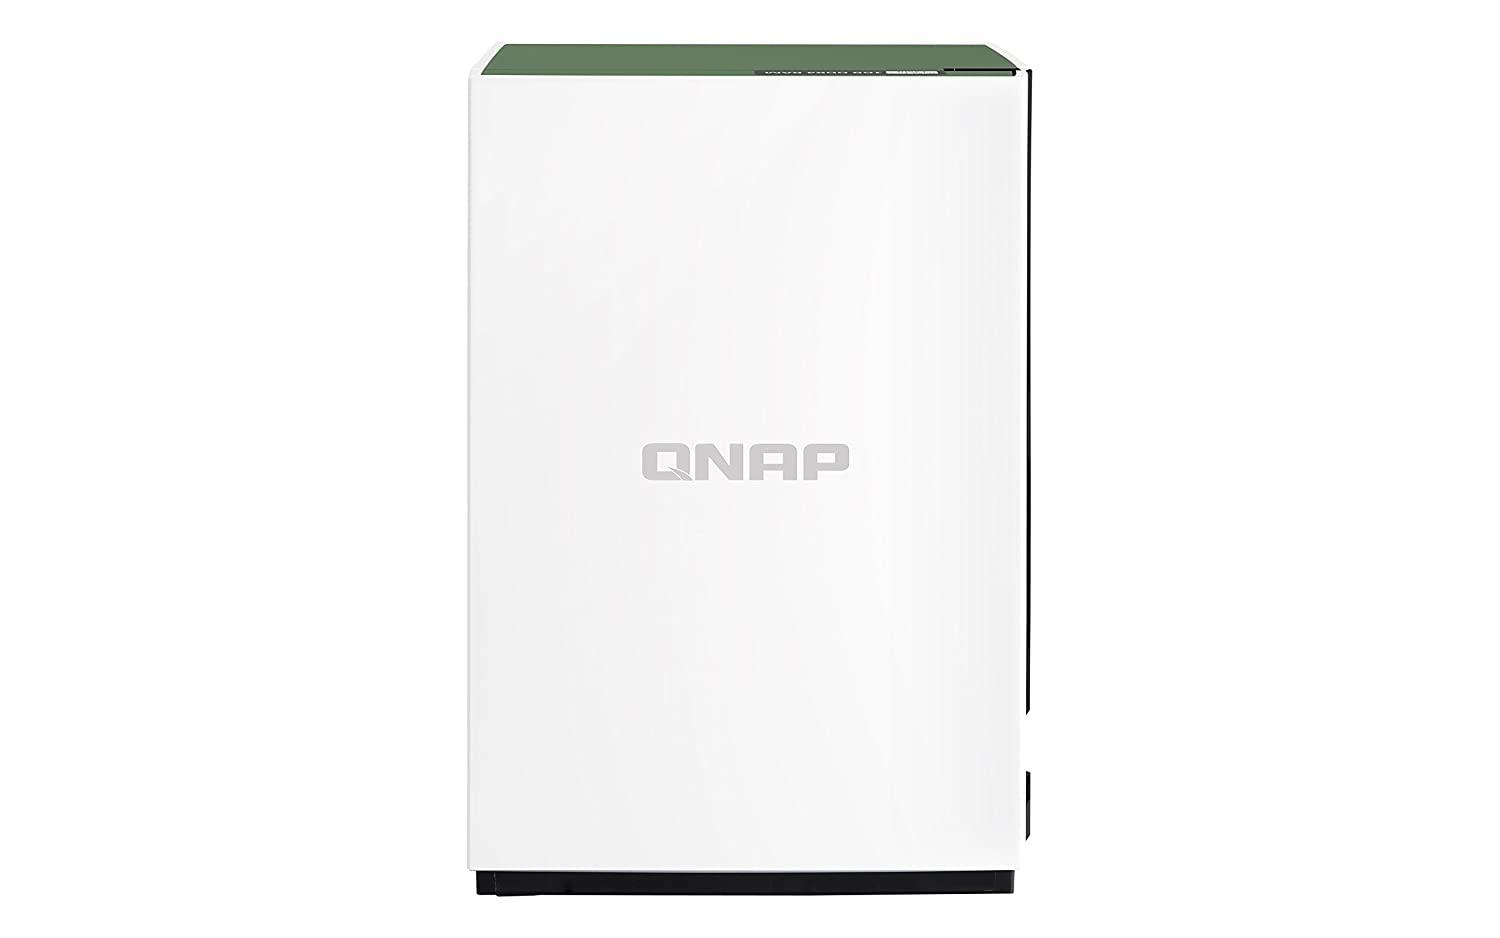 Installed with 2 x 3TB Western Digital Red Drives {GDPR Compliant} QNAP TS-228A 6TB 2 Bay NAS Solution